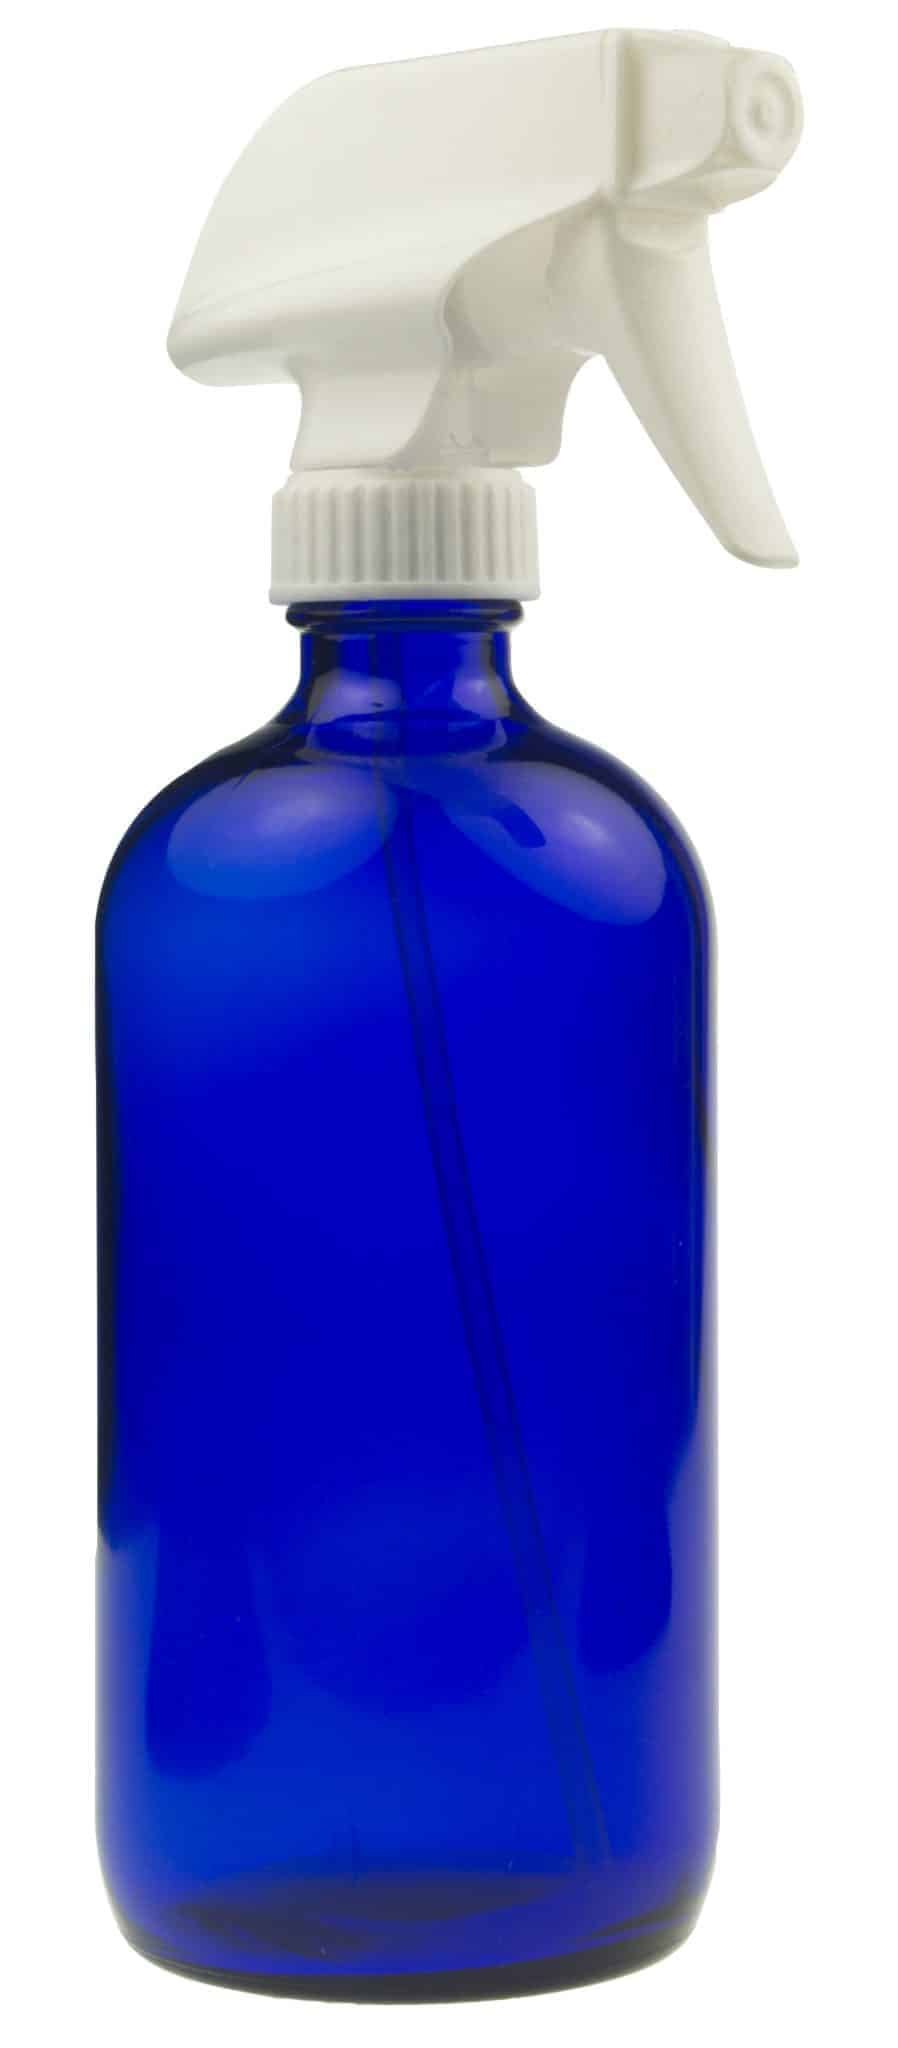 16oz Blue Glass Spray Bottle with White Spray Nozzle ~ 1 Pack Image